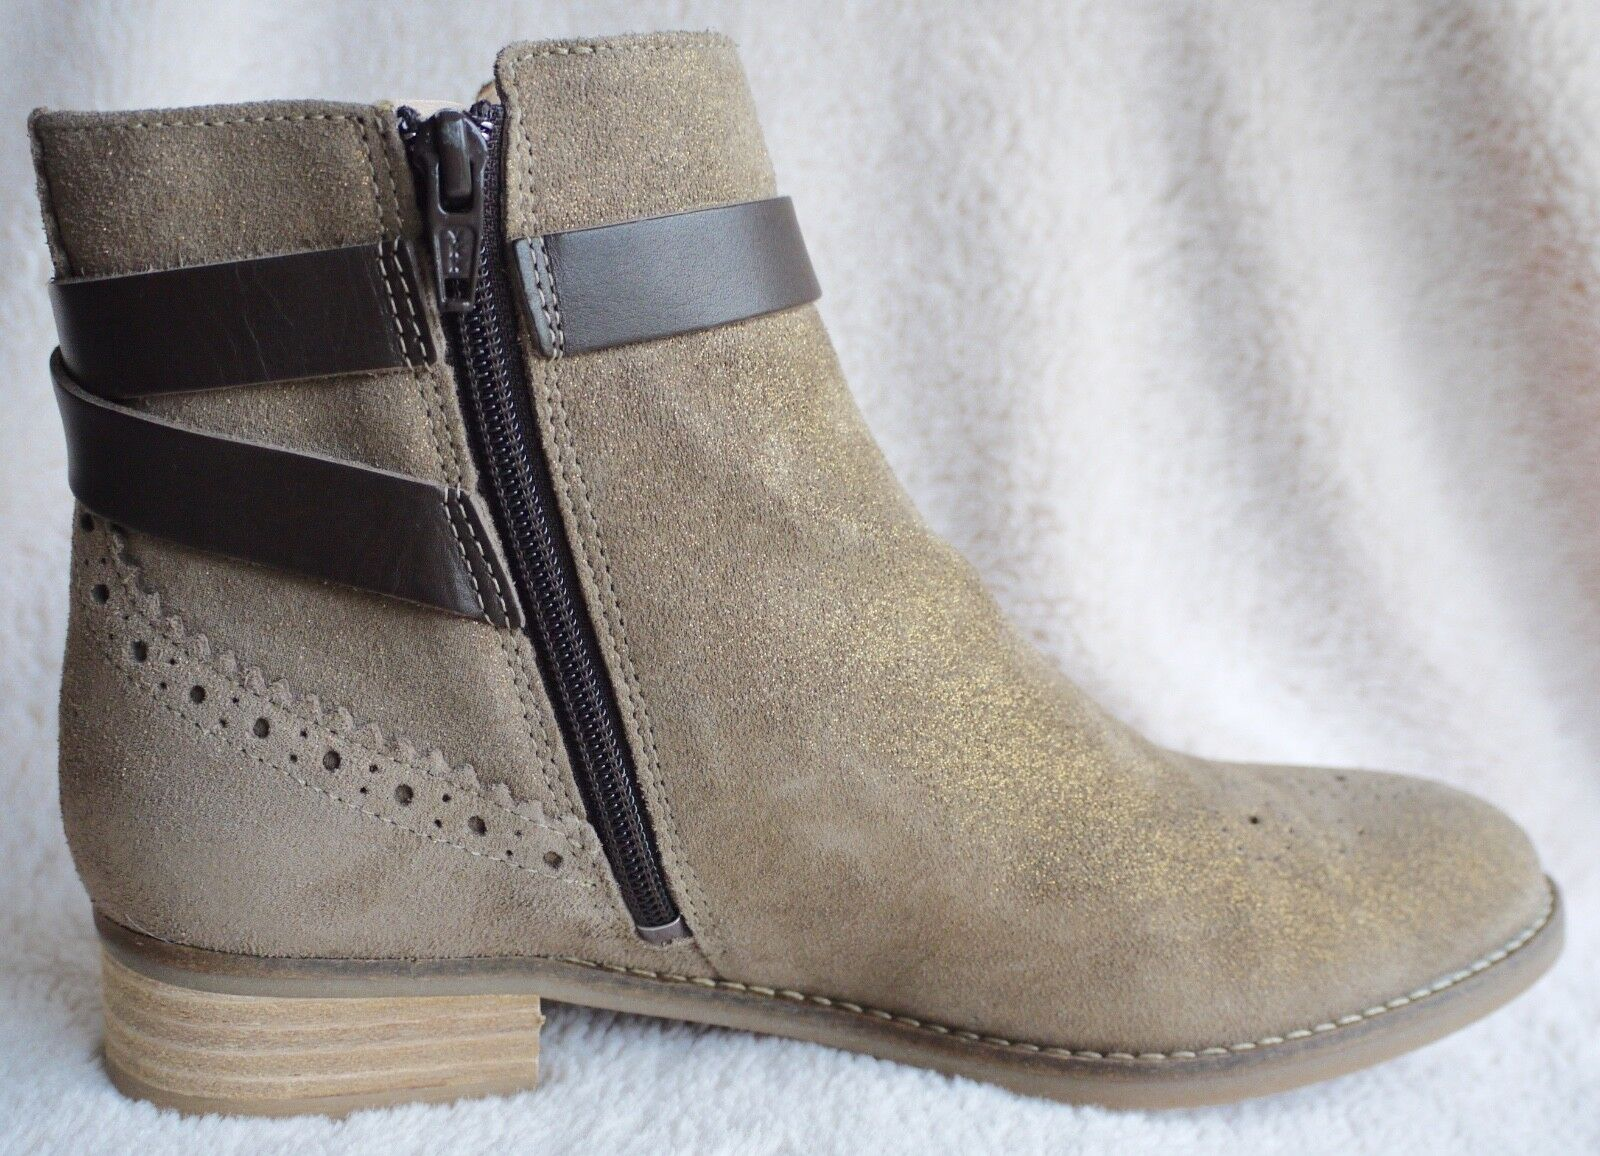 60c4ea483d Clarks Netley Olivia Taupe Suede Ankle BOOTS UK 5.5 EU 39 for sale ...